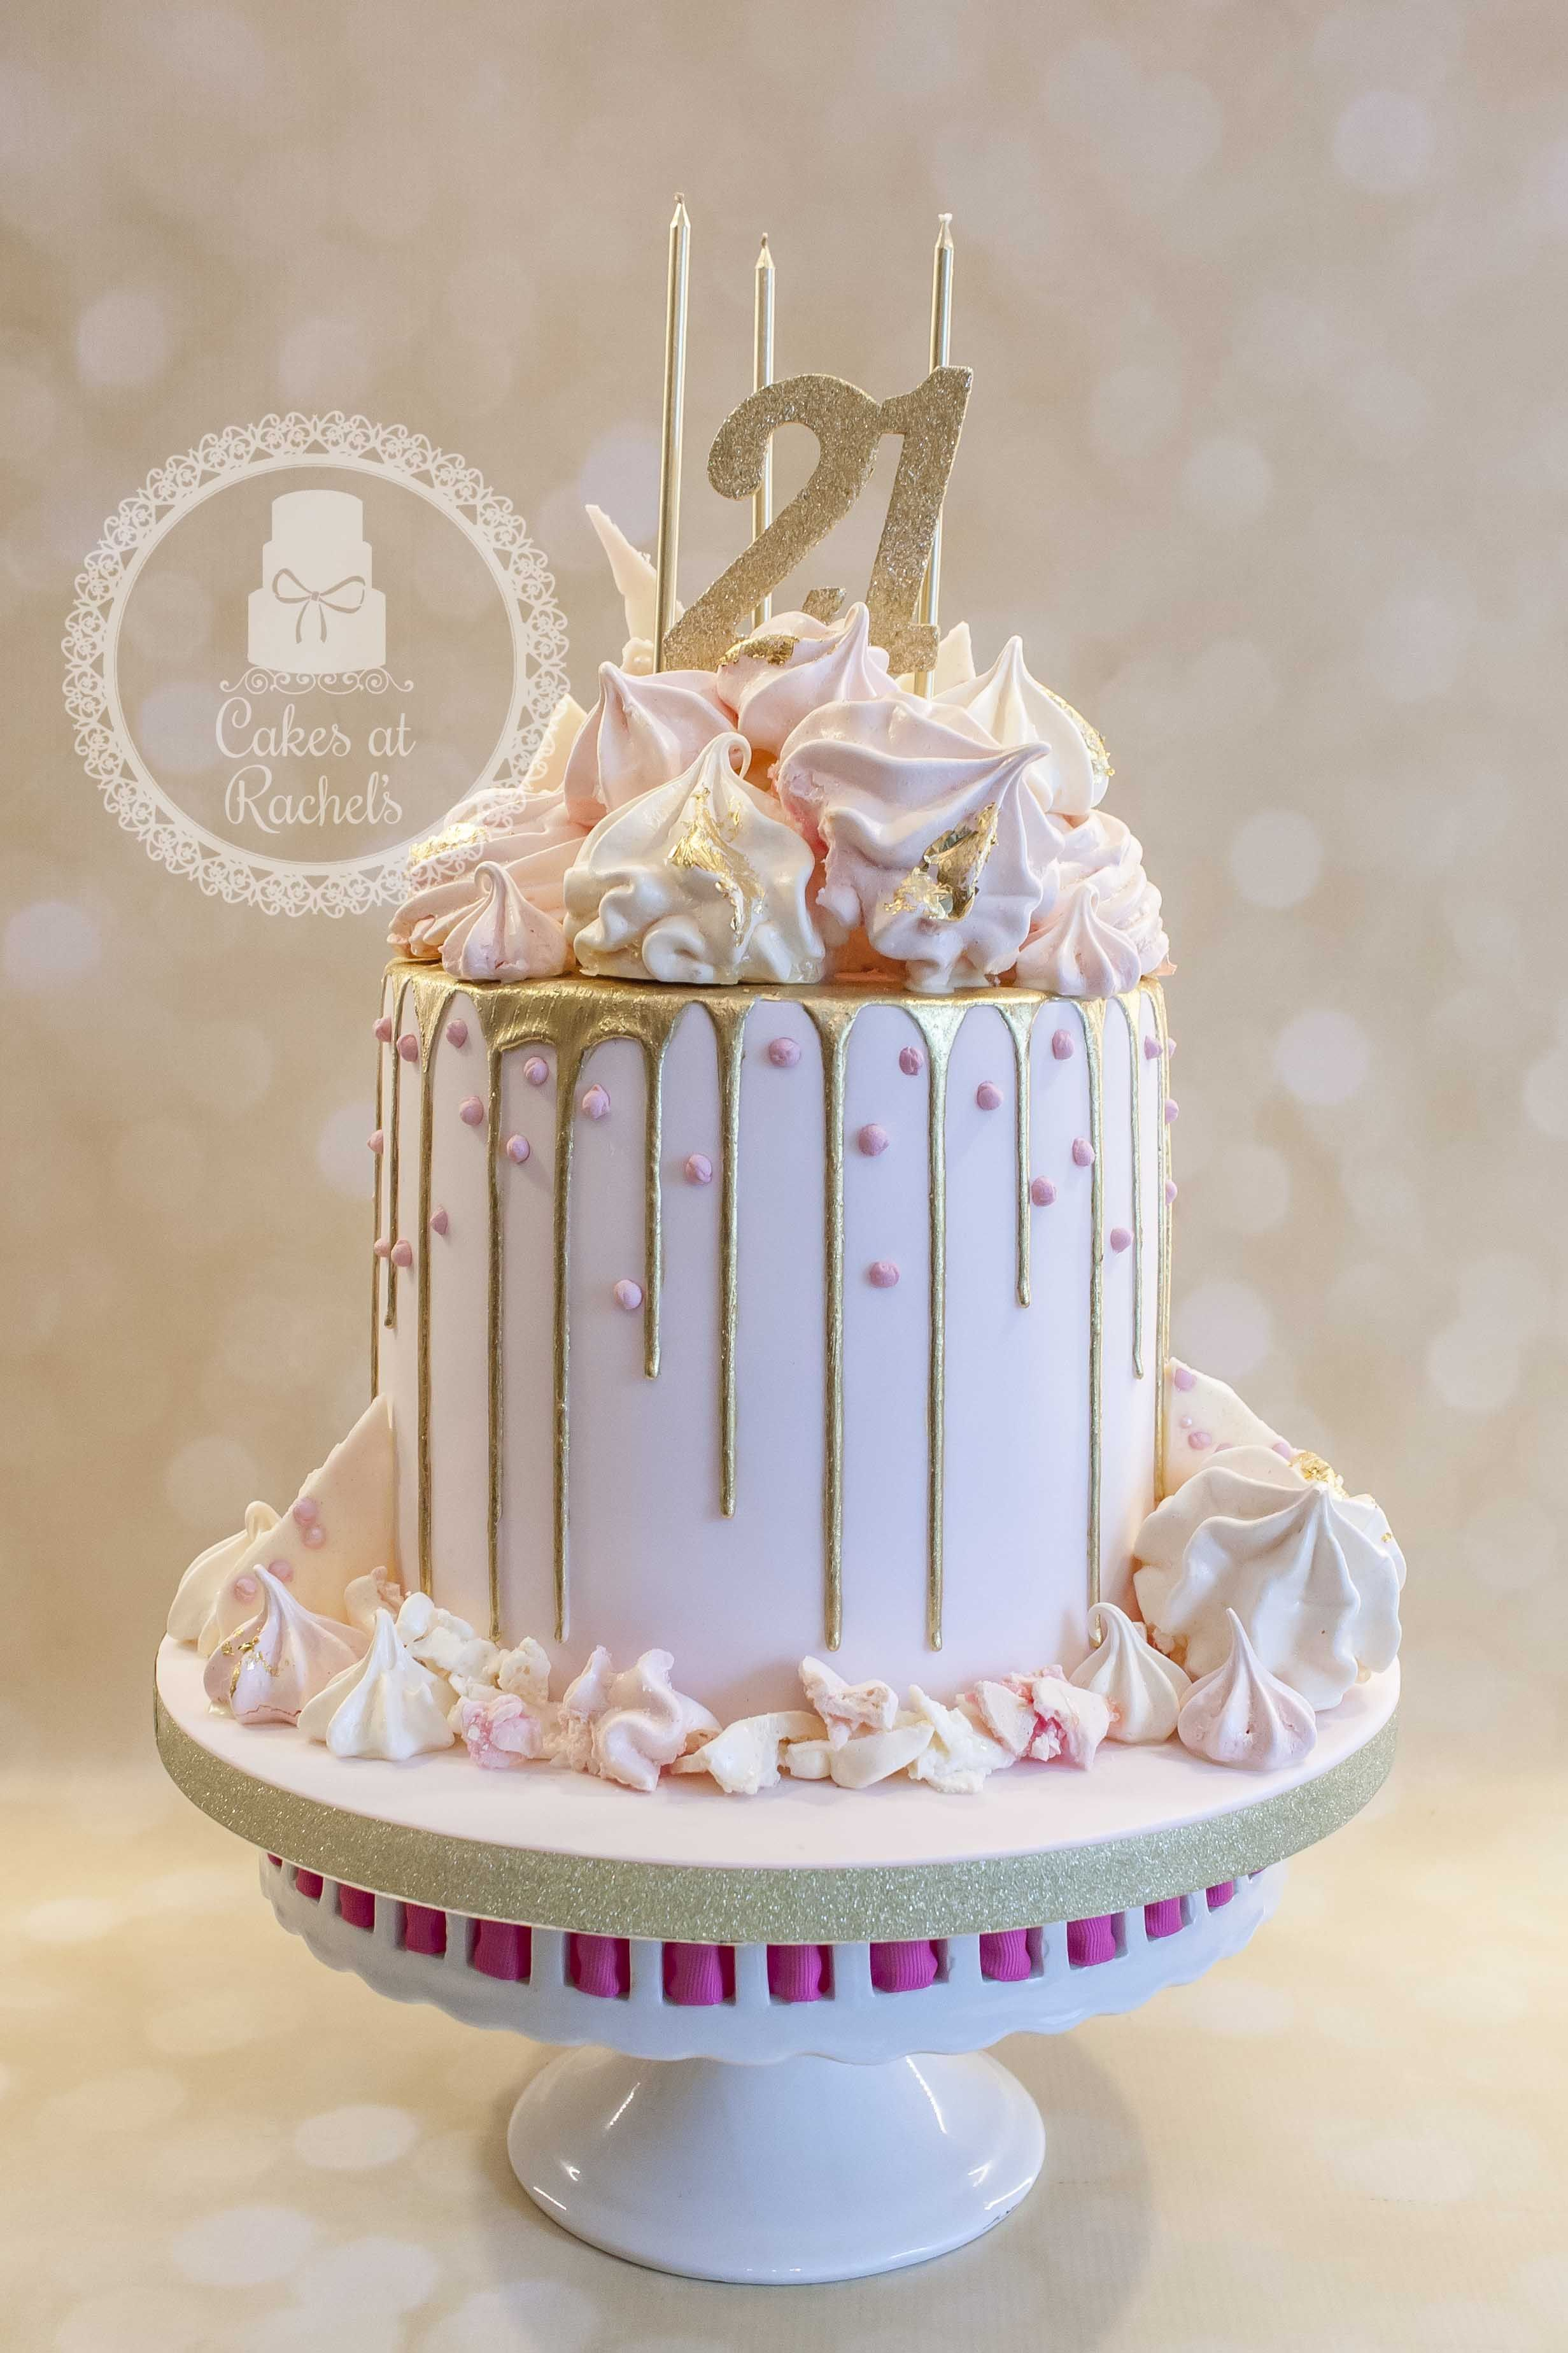 Sensational Image Result For Most Sophisticated Birthday Cakes 21St Birthday Funny Birthday Cards Online Alyptdamsfinfo